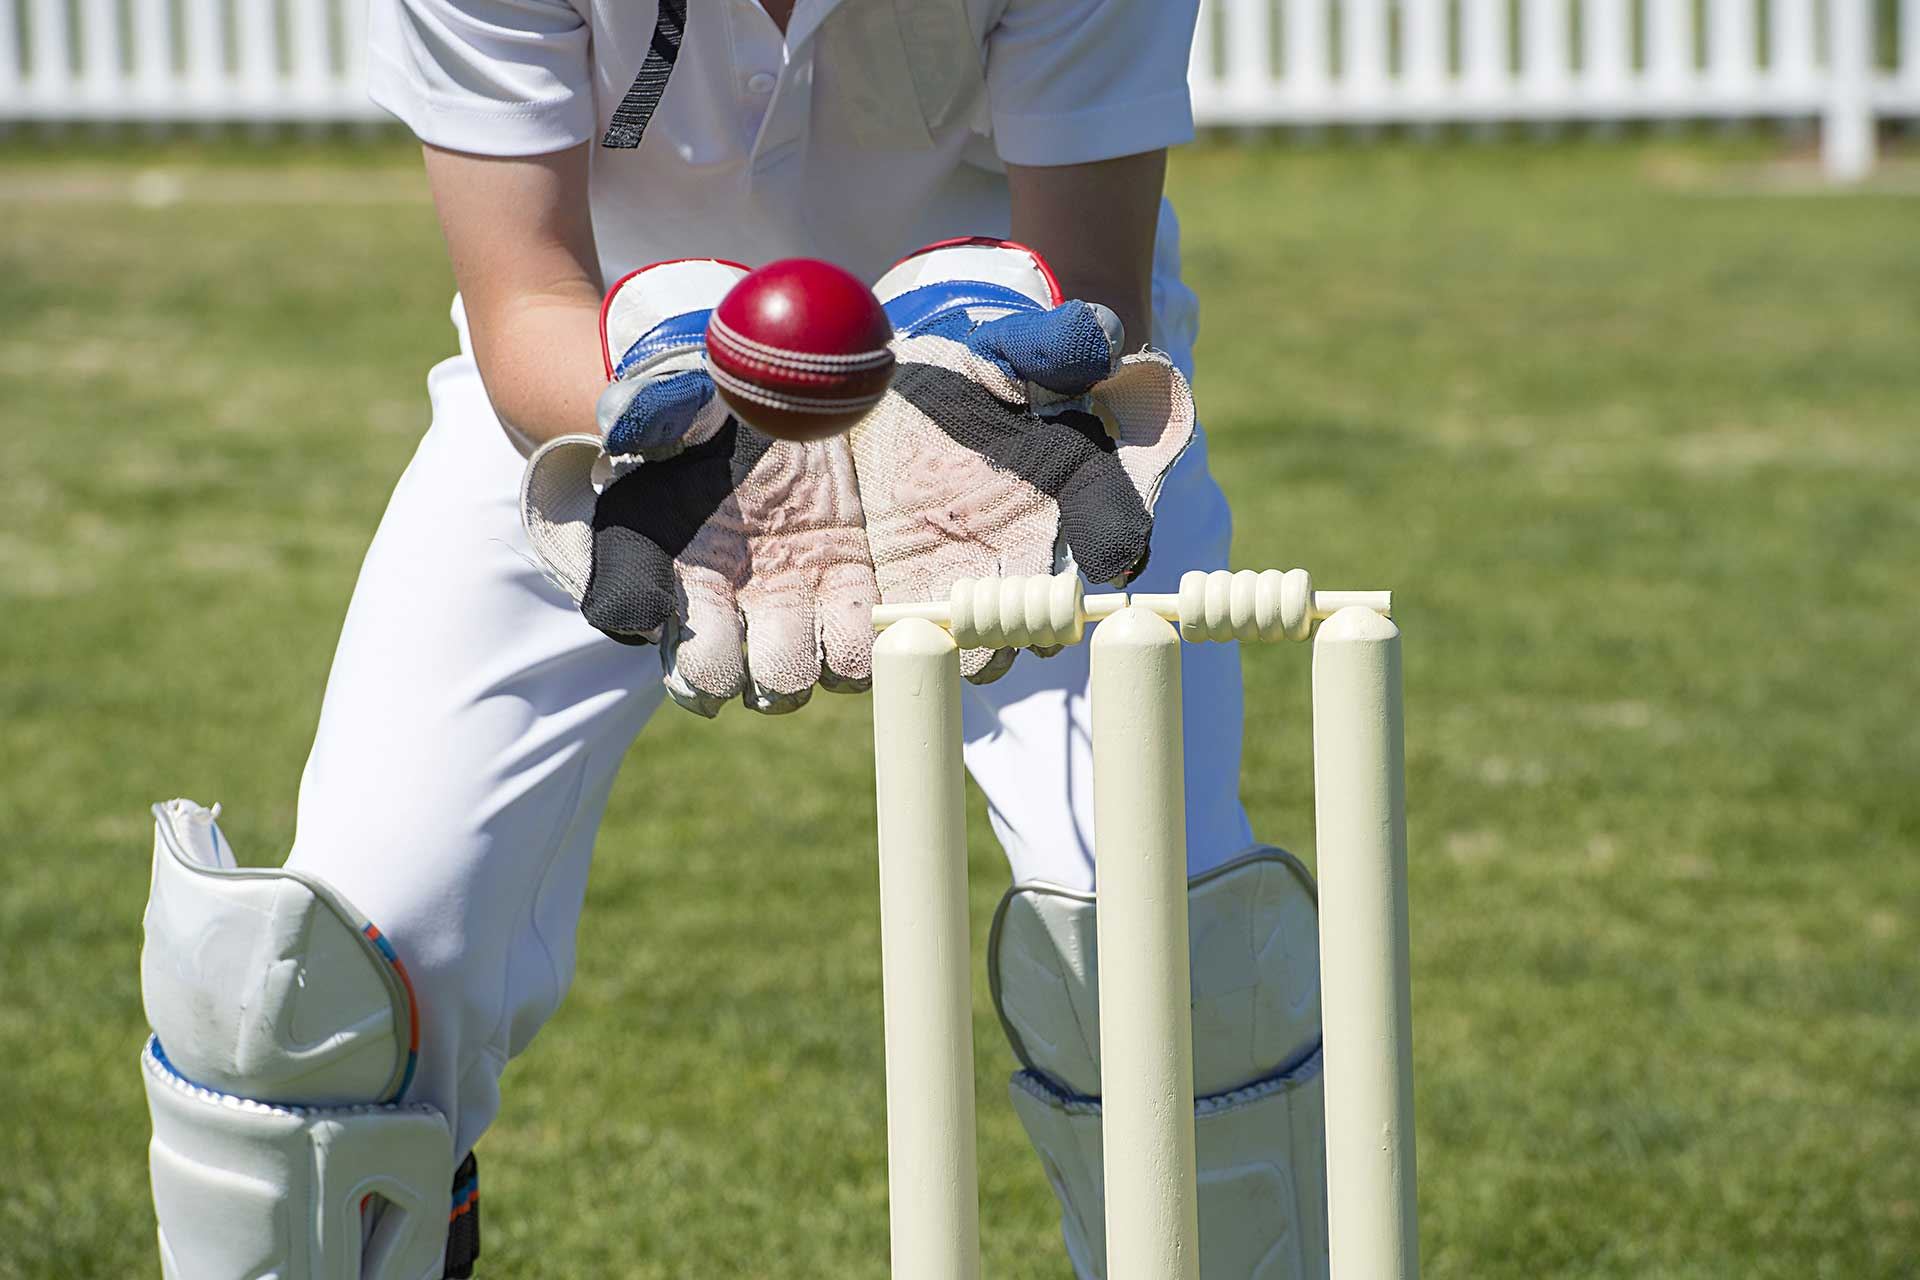 Cricket player catching the ball